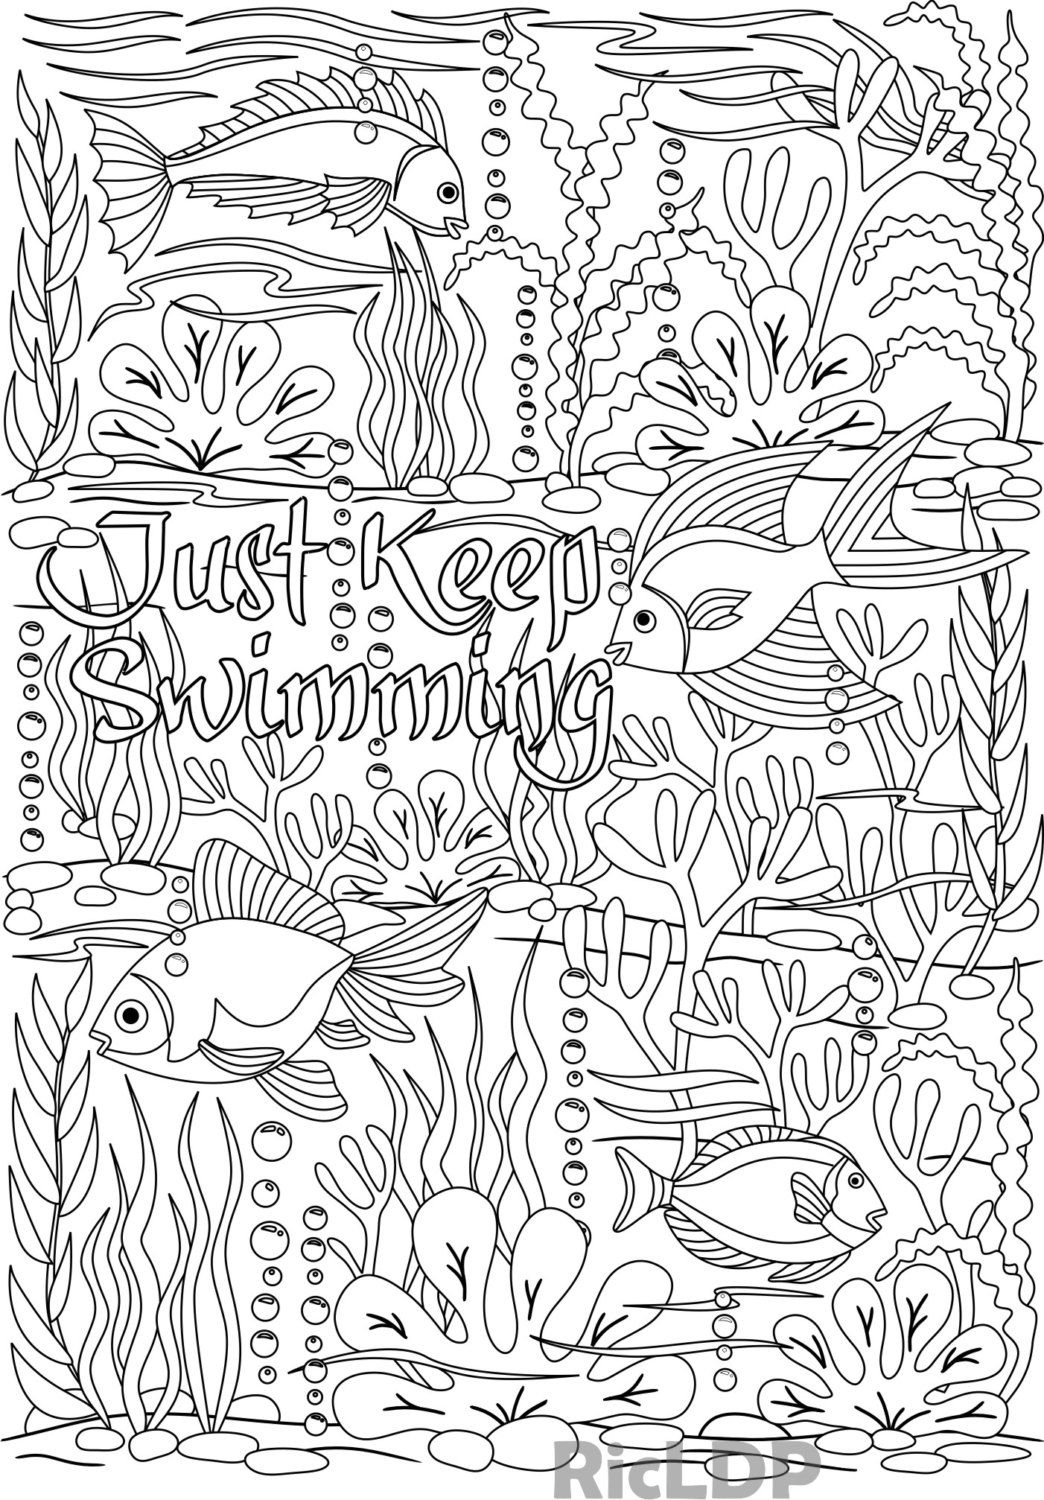 Just Keep Swimming Coloring Page Under The Sea Design Fishes